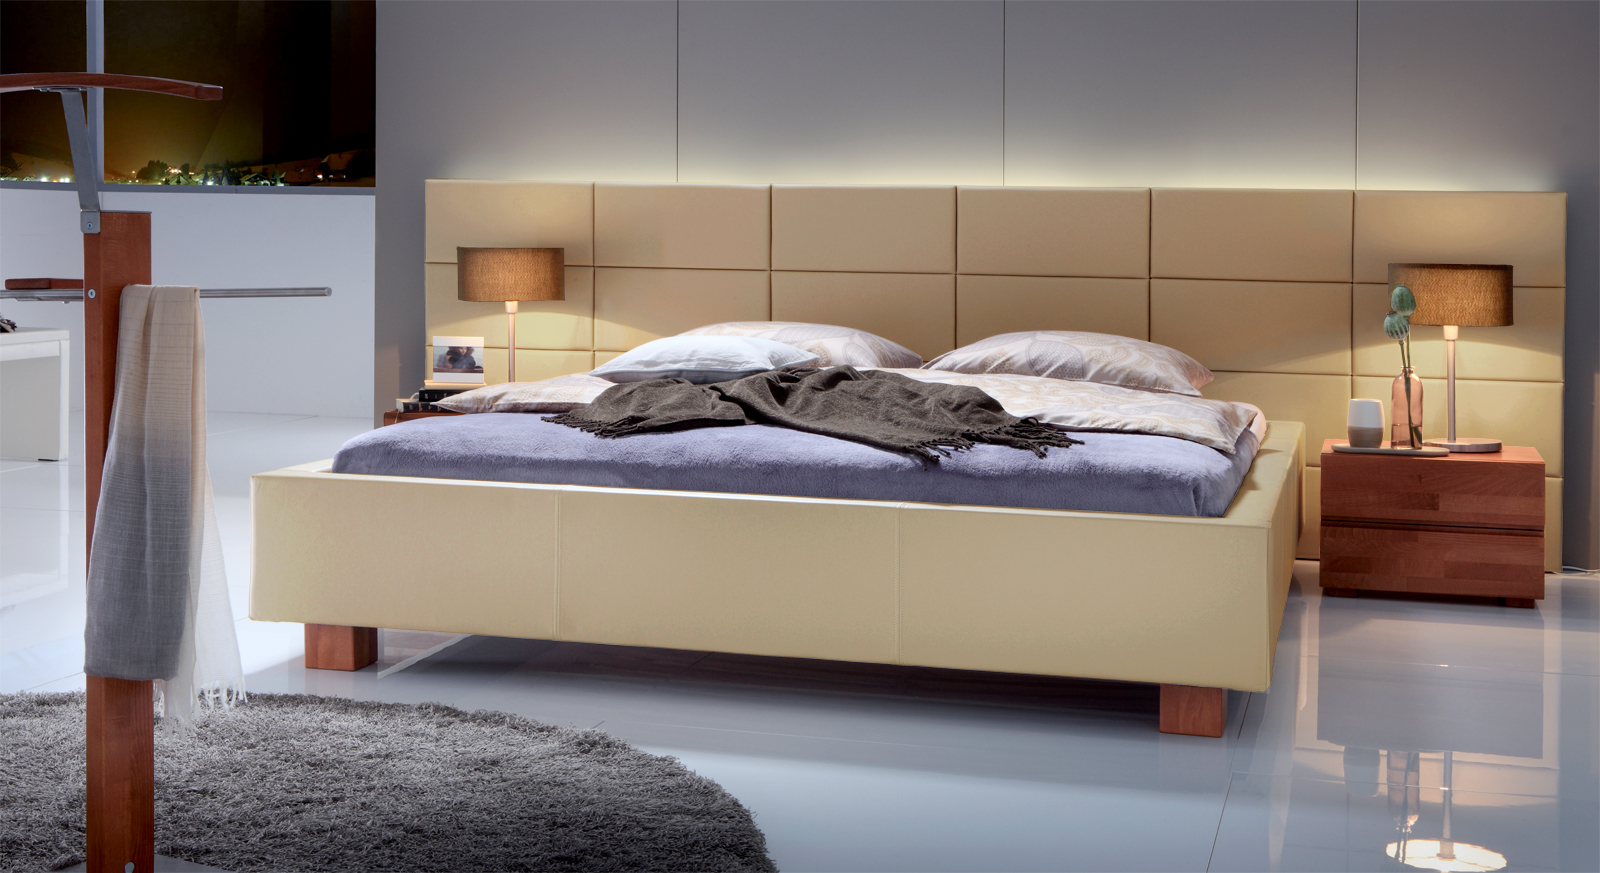 polsterbett mit wandpaneel z b 140x200 cm mill creek. Black Bedroom Furniture Sets. Home Design Ideas